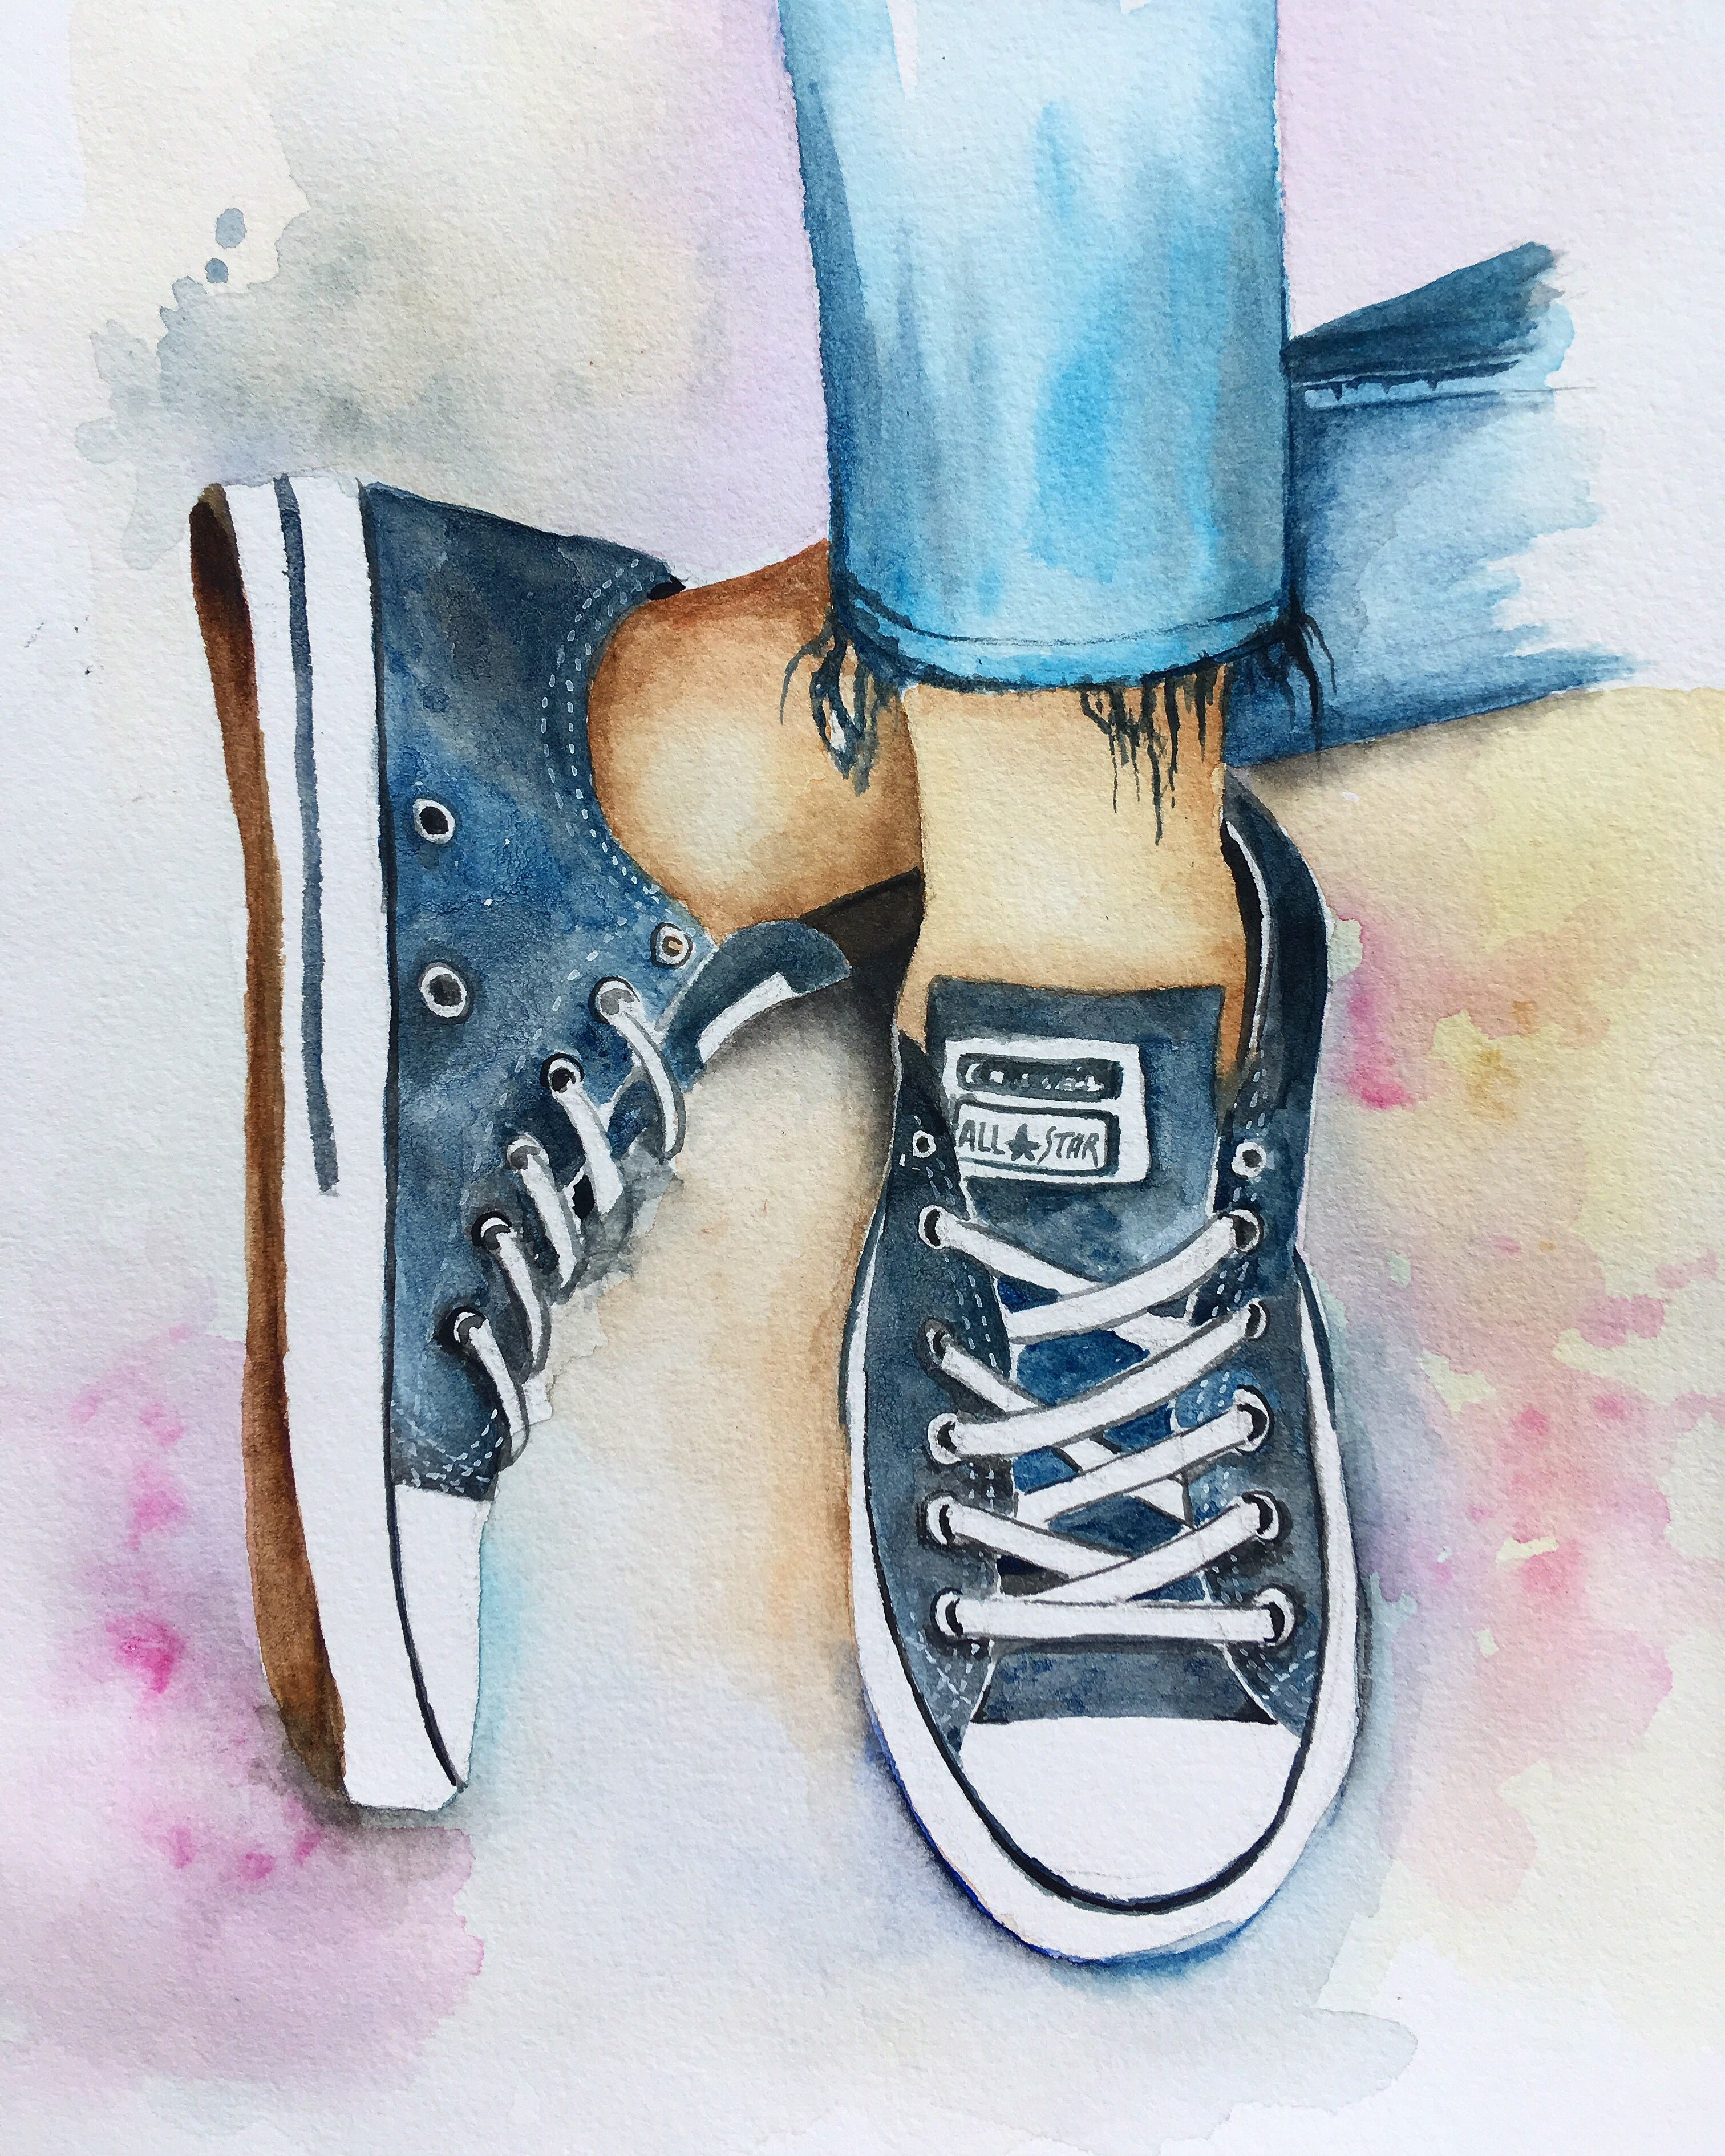 Pin on Watercolor art